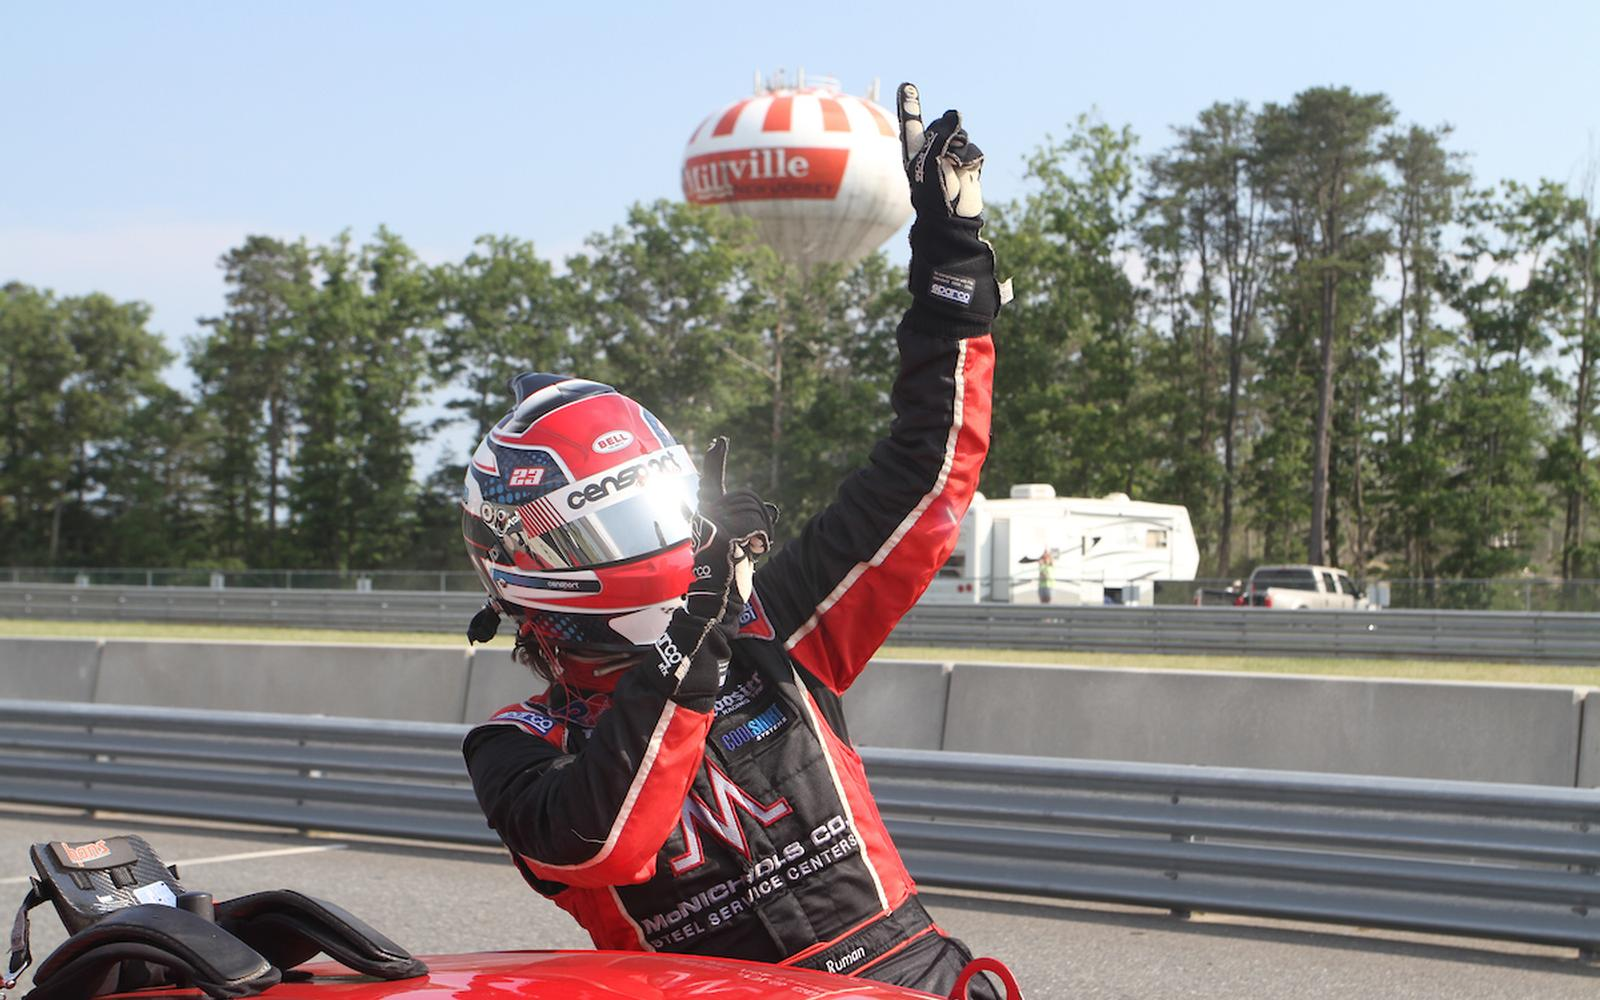 Ruman heads to NJMP's Thunderbolt Track